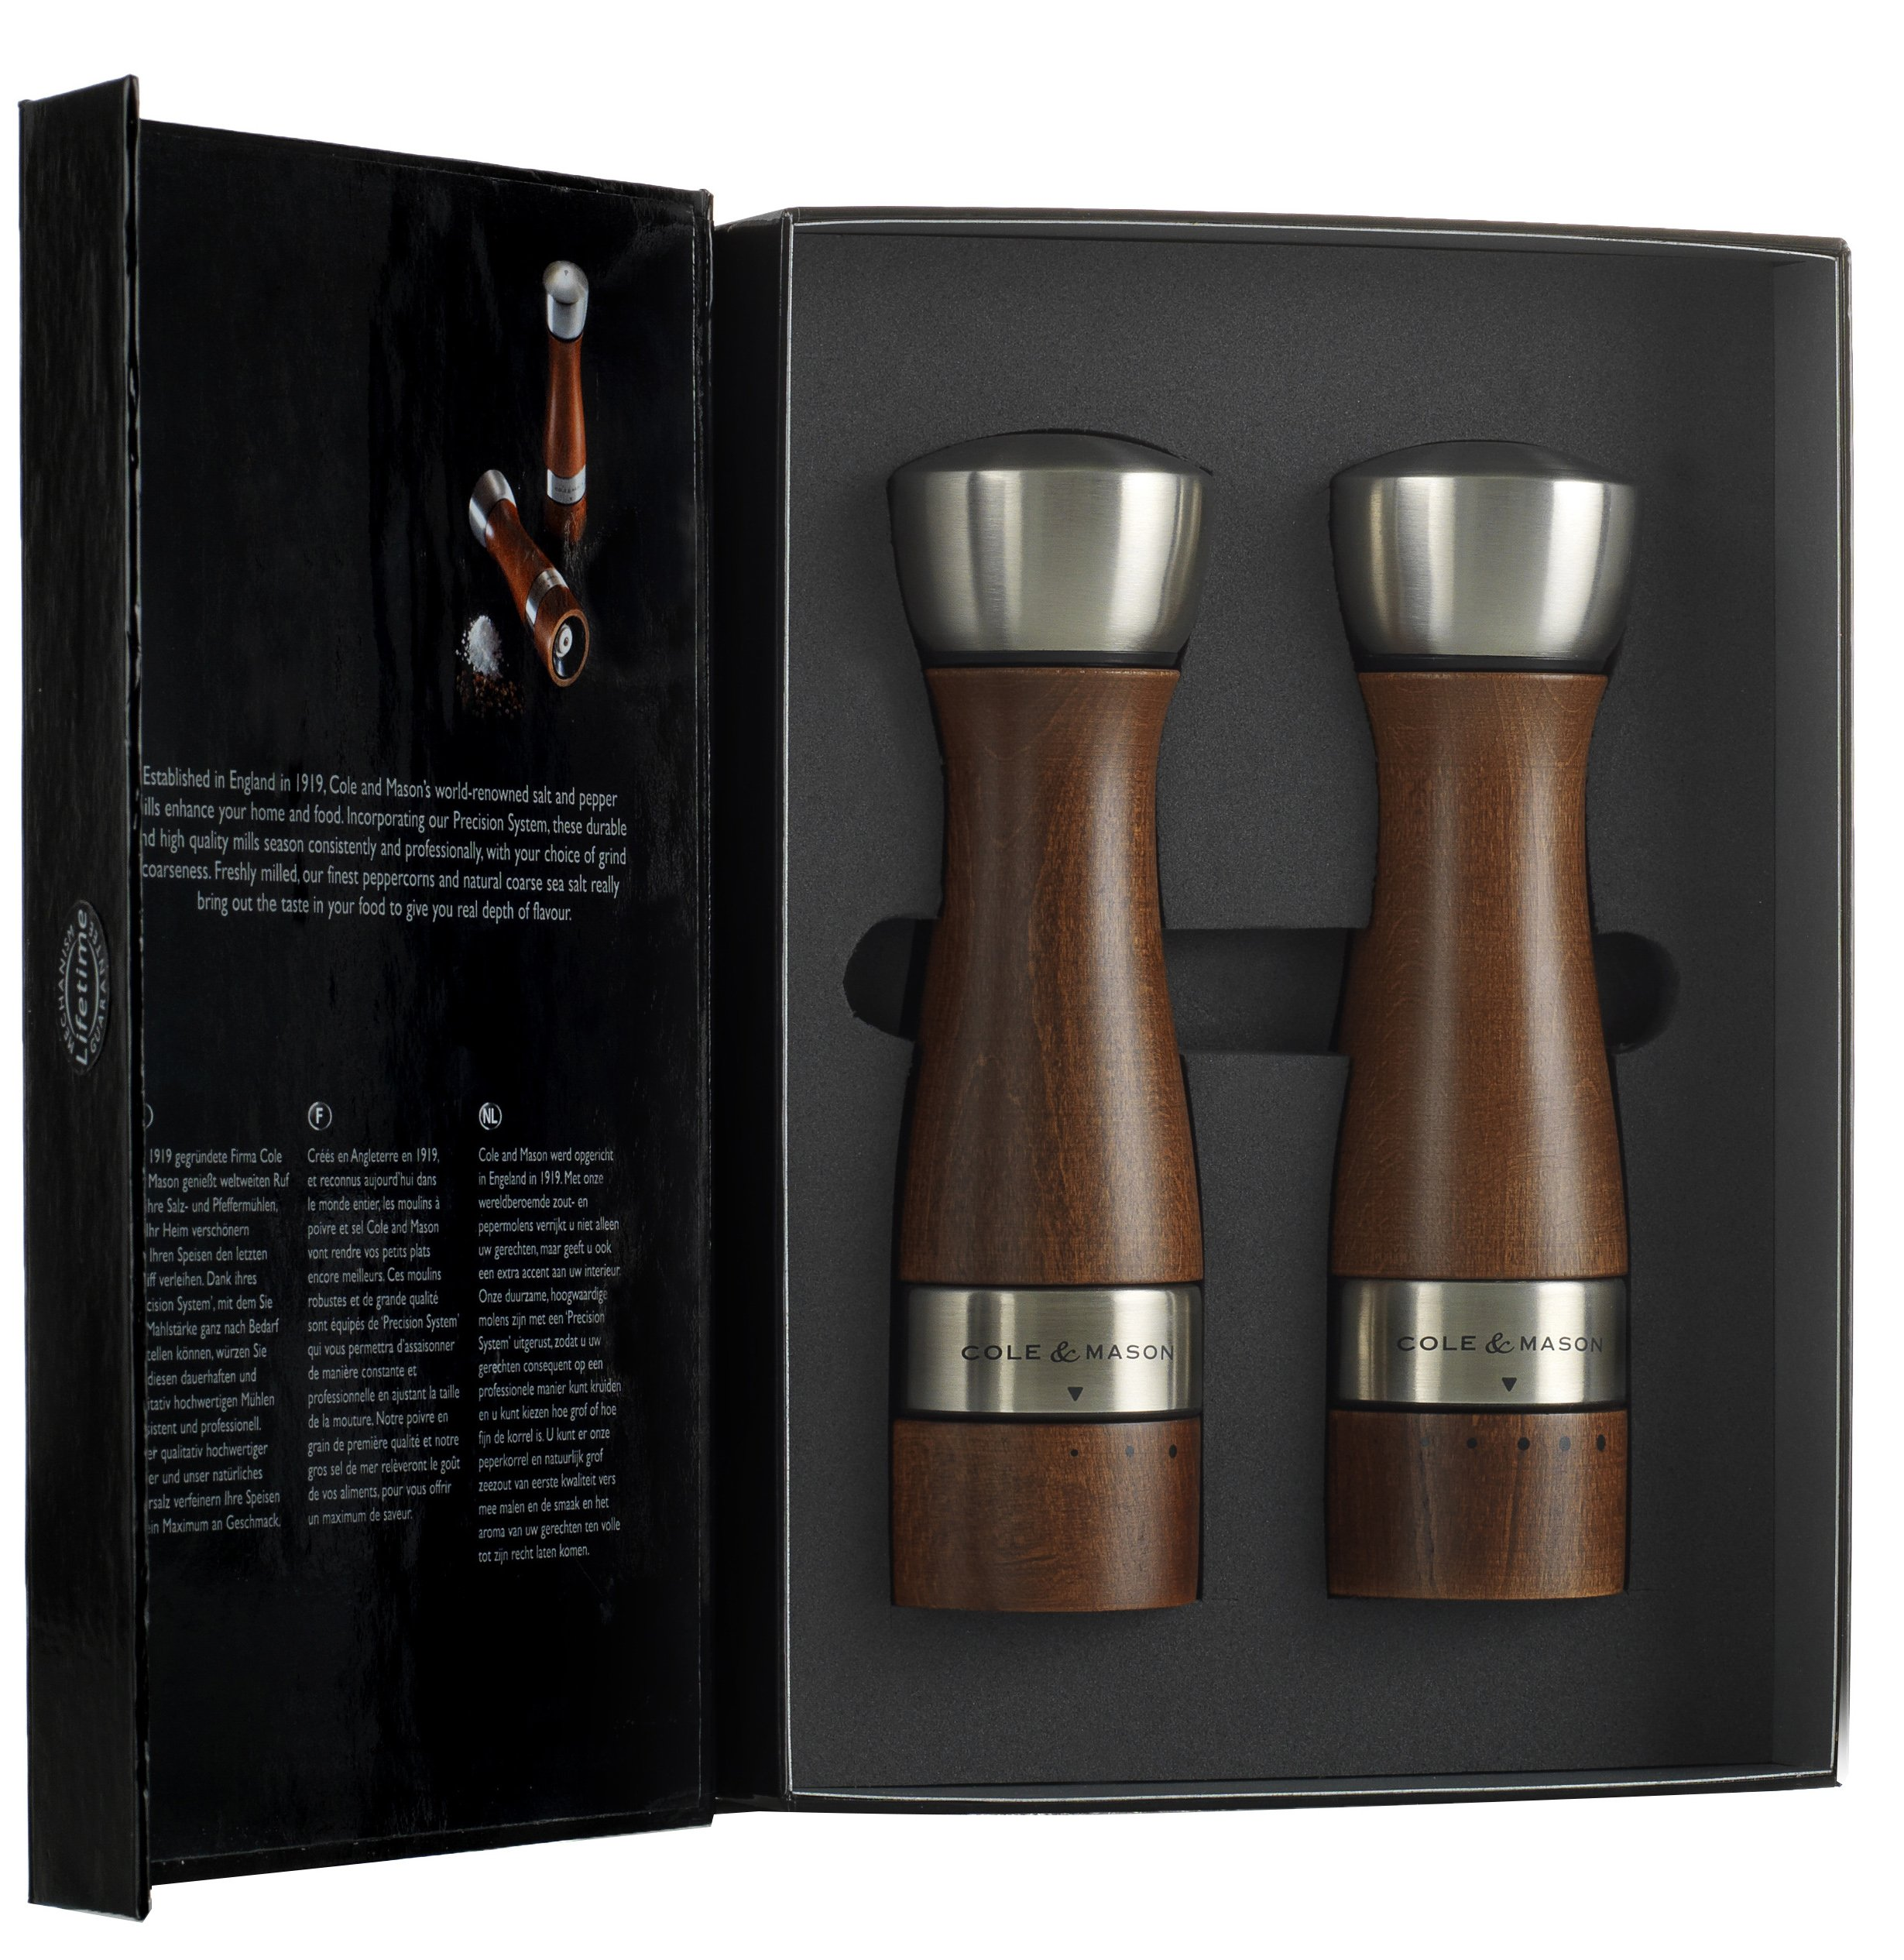 COLE & MASON Oldbury Wood Salt and Pepper Grinder Set - Wooden Mills Include Gift Box, Gourmet Precision Mechanisms and Premium Sea Salt & Peppercorns, Brown by Cole & Mason